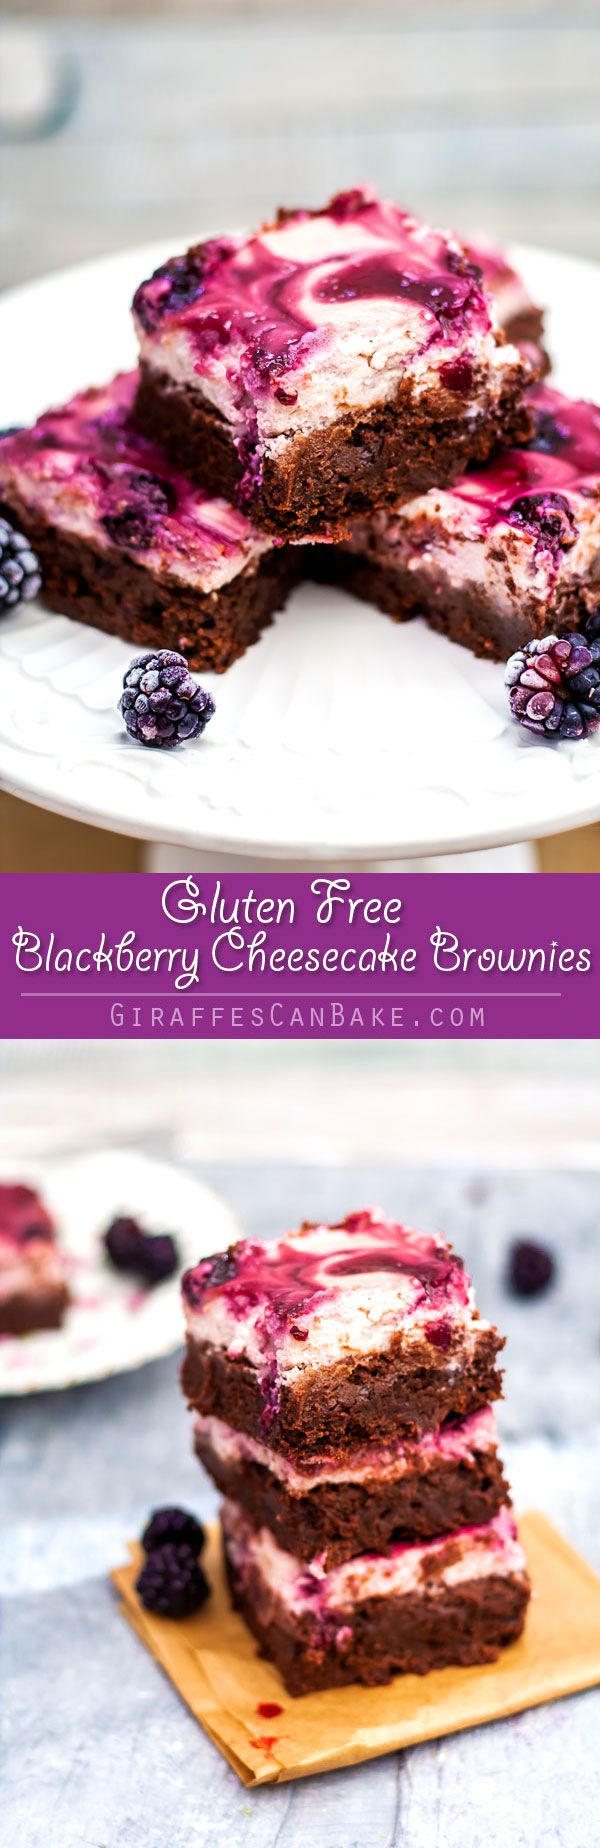 These Gluten Free Blackberry Cheesecake Brownies are chocolatey, creamy, and fruity! Fudgy brownies are topped with a thick and creamy blackberry cheesecake. So quick and easy to make, and a real crowd pleaser. Gluten free decadence!